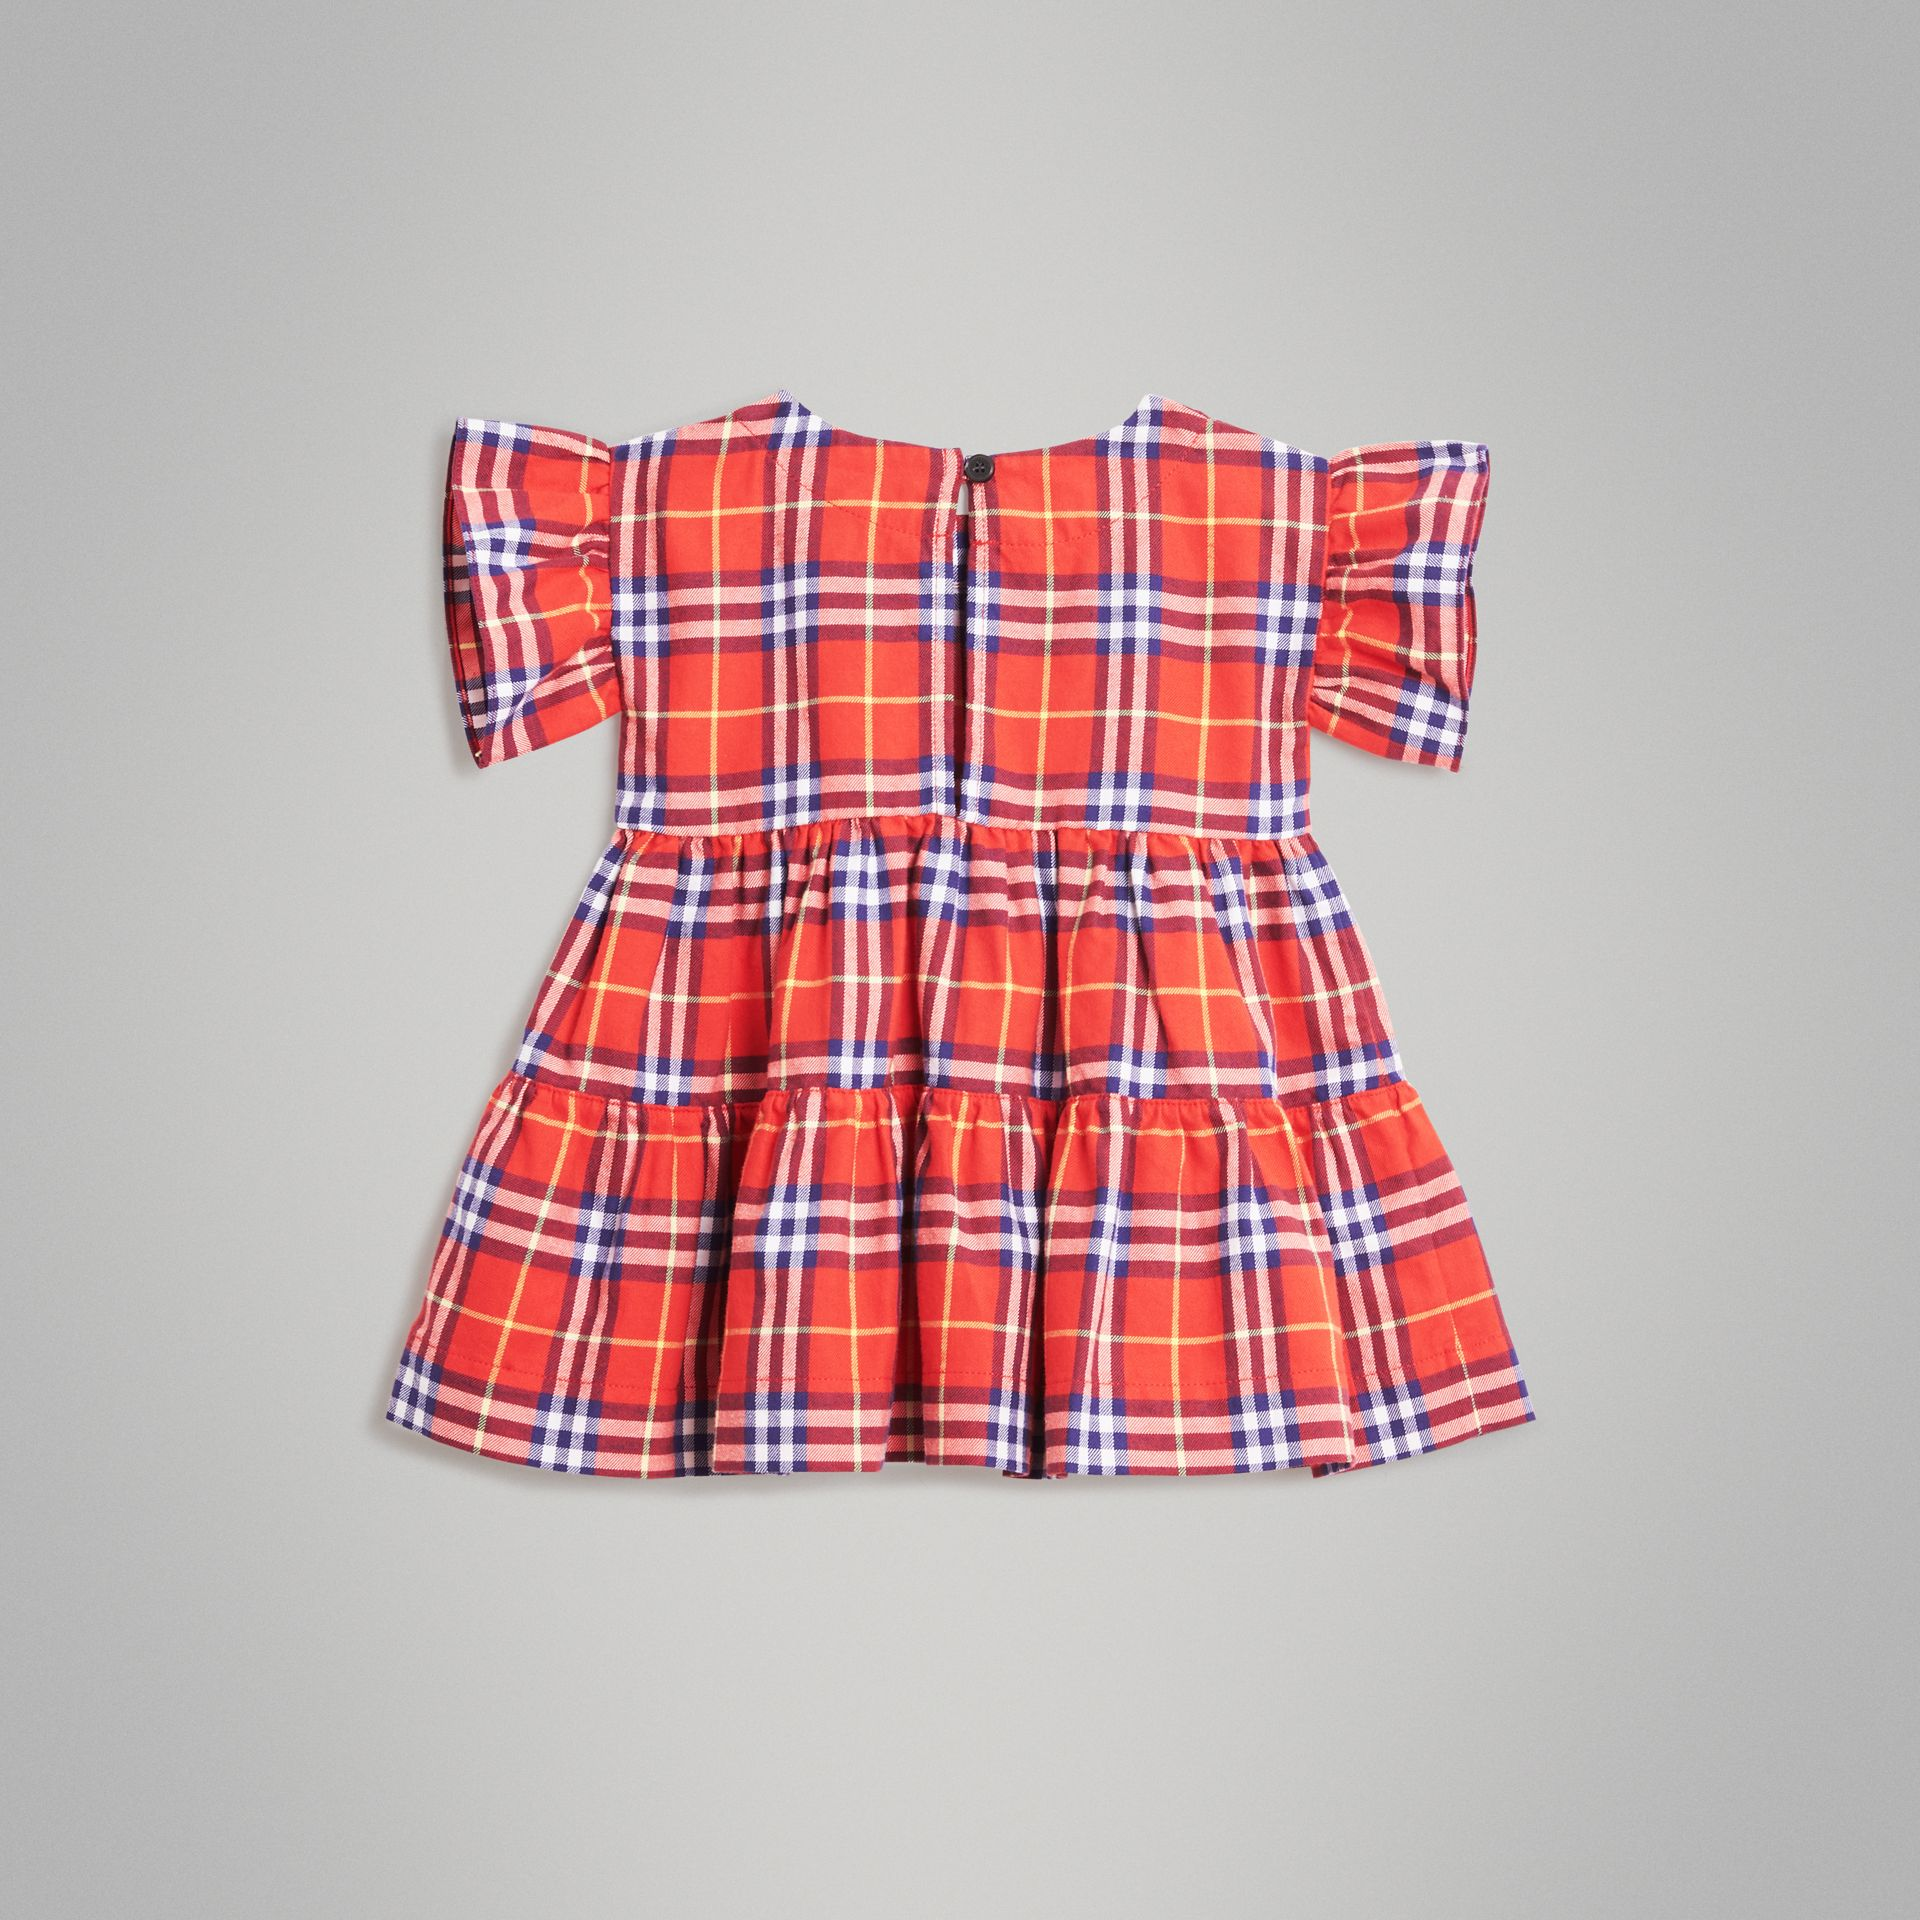 Ruffle Detail Cotton Check Dress in Orange Red - Children | Burberry - gallery image 3